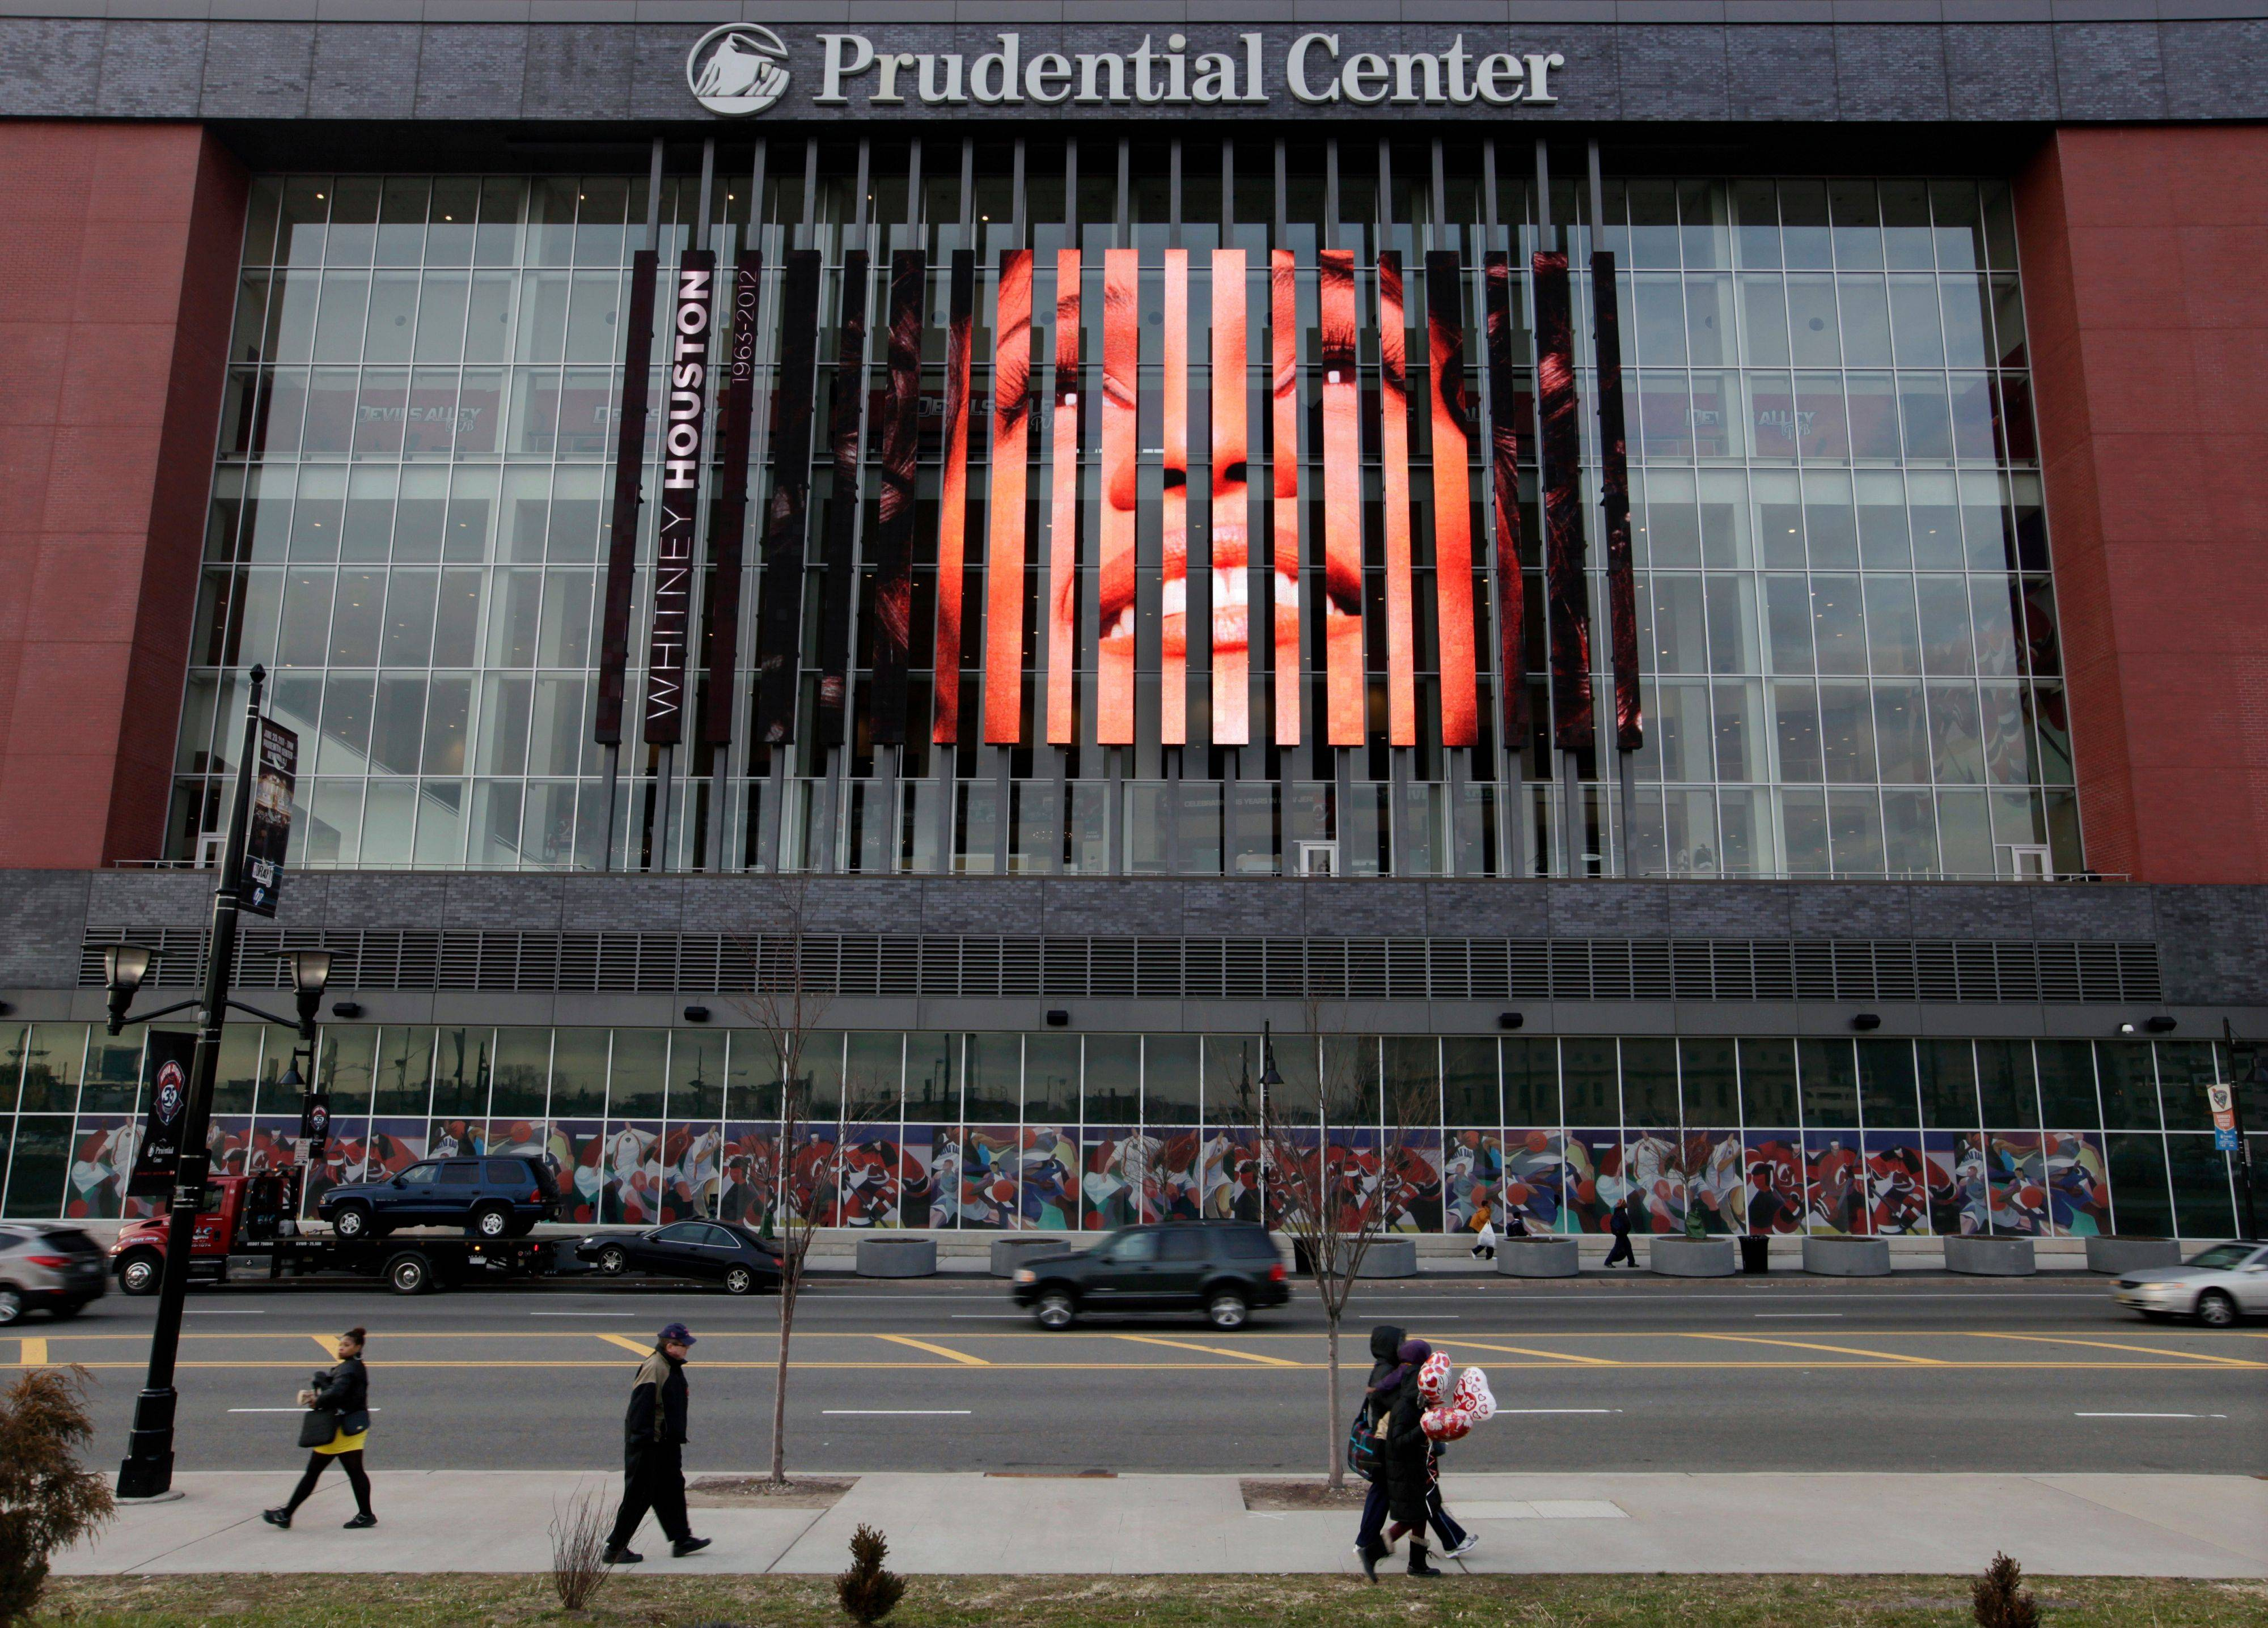 People walk past, a large image of Whitney Houston displayed on the side of the Prudential Center in Newark, N.J., Tuesday, Feb. 14, 2012. Houston's funeral will be held Saturday in the church where she first showcased her singing talents as a child, her family choosing to remember her in a private service rather than in a large event at an arena. Officials had discussed the possibility of holding a memorial at the Prudential Center, a major sports and entertainment venue that can seat about 18,000 people, but the funeral home said it had been ruled out. Houston, 48, died Feb. 11 at a hotel in Beverly Hills, Calif., just hours before she was set to perform at producer Clive Davis' pre-Grammy Awards bash.